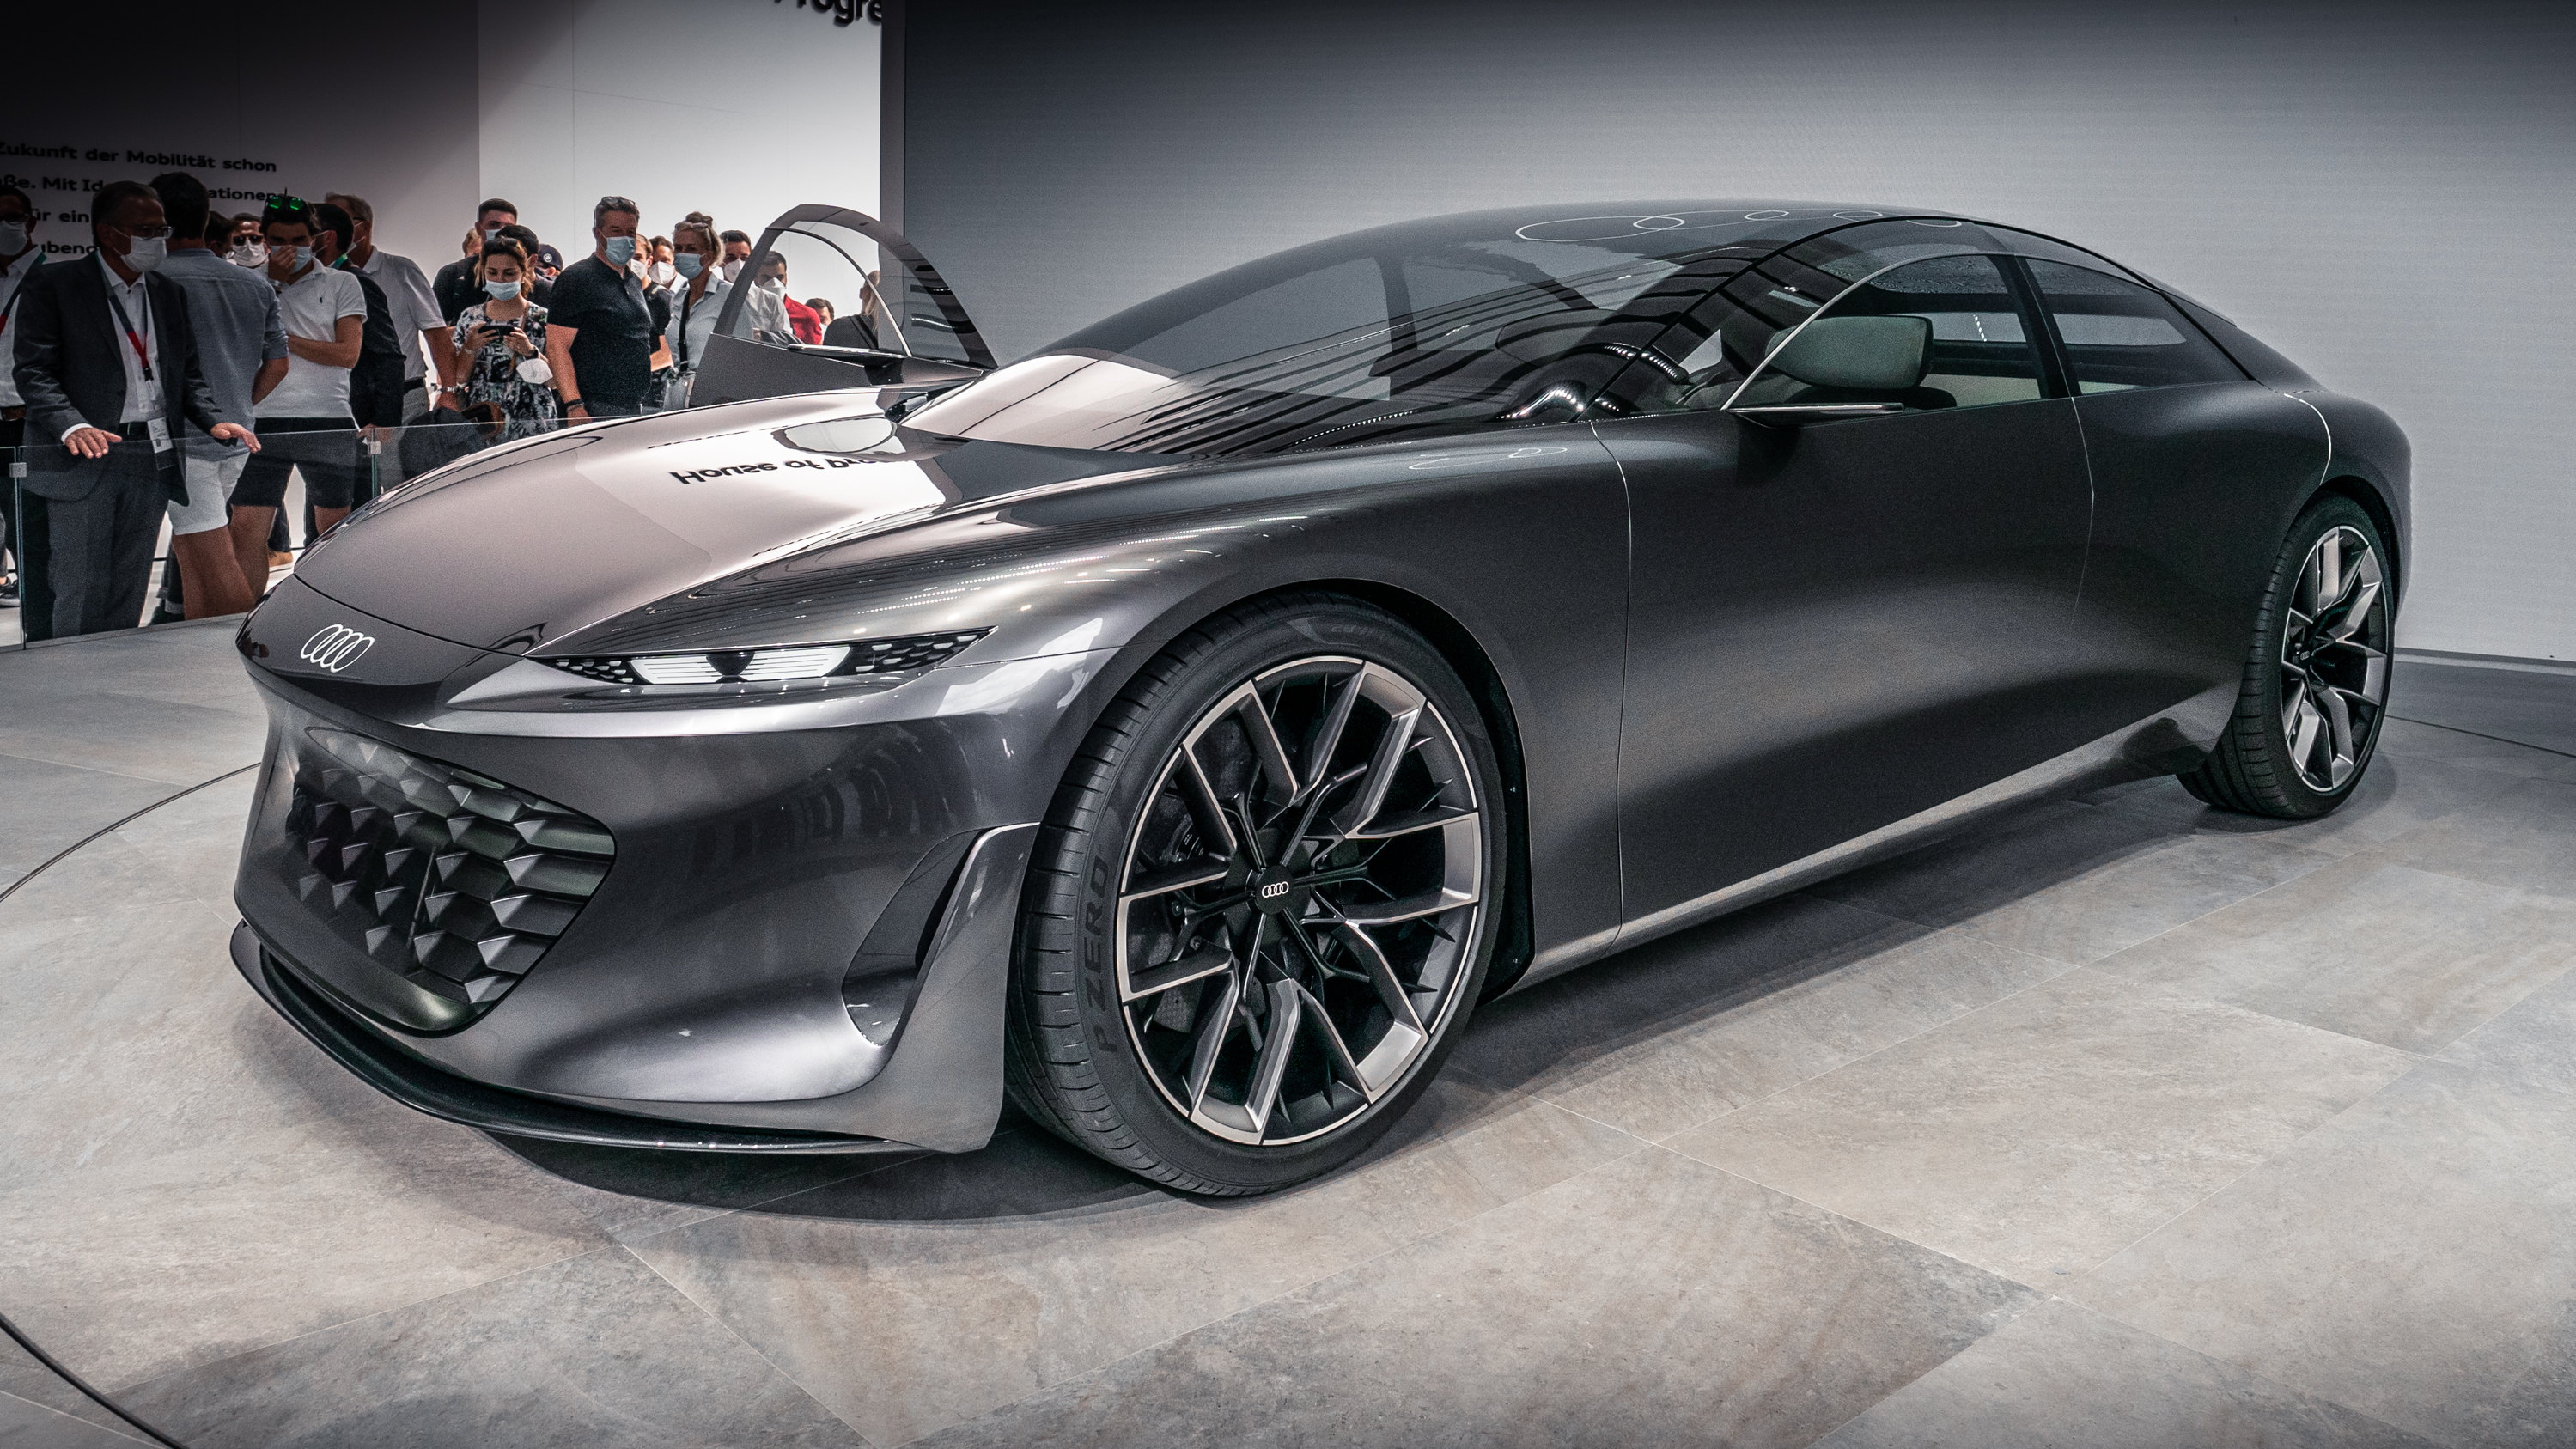 11 cars you need to know about from the 2021 Munich motor show